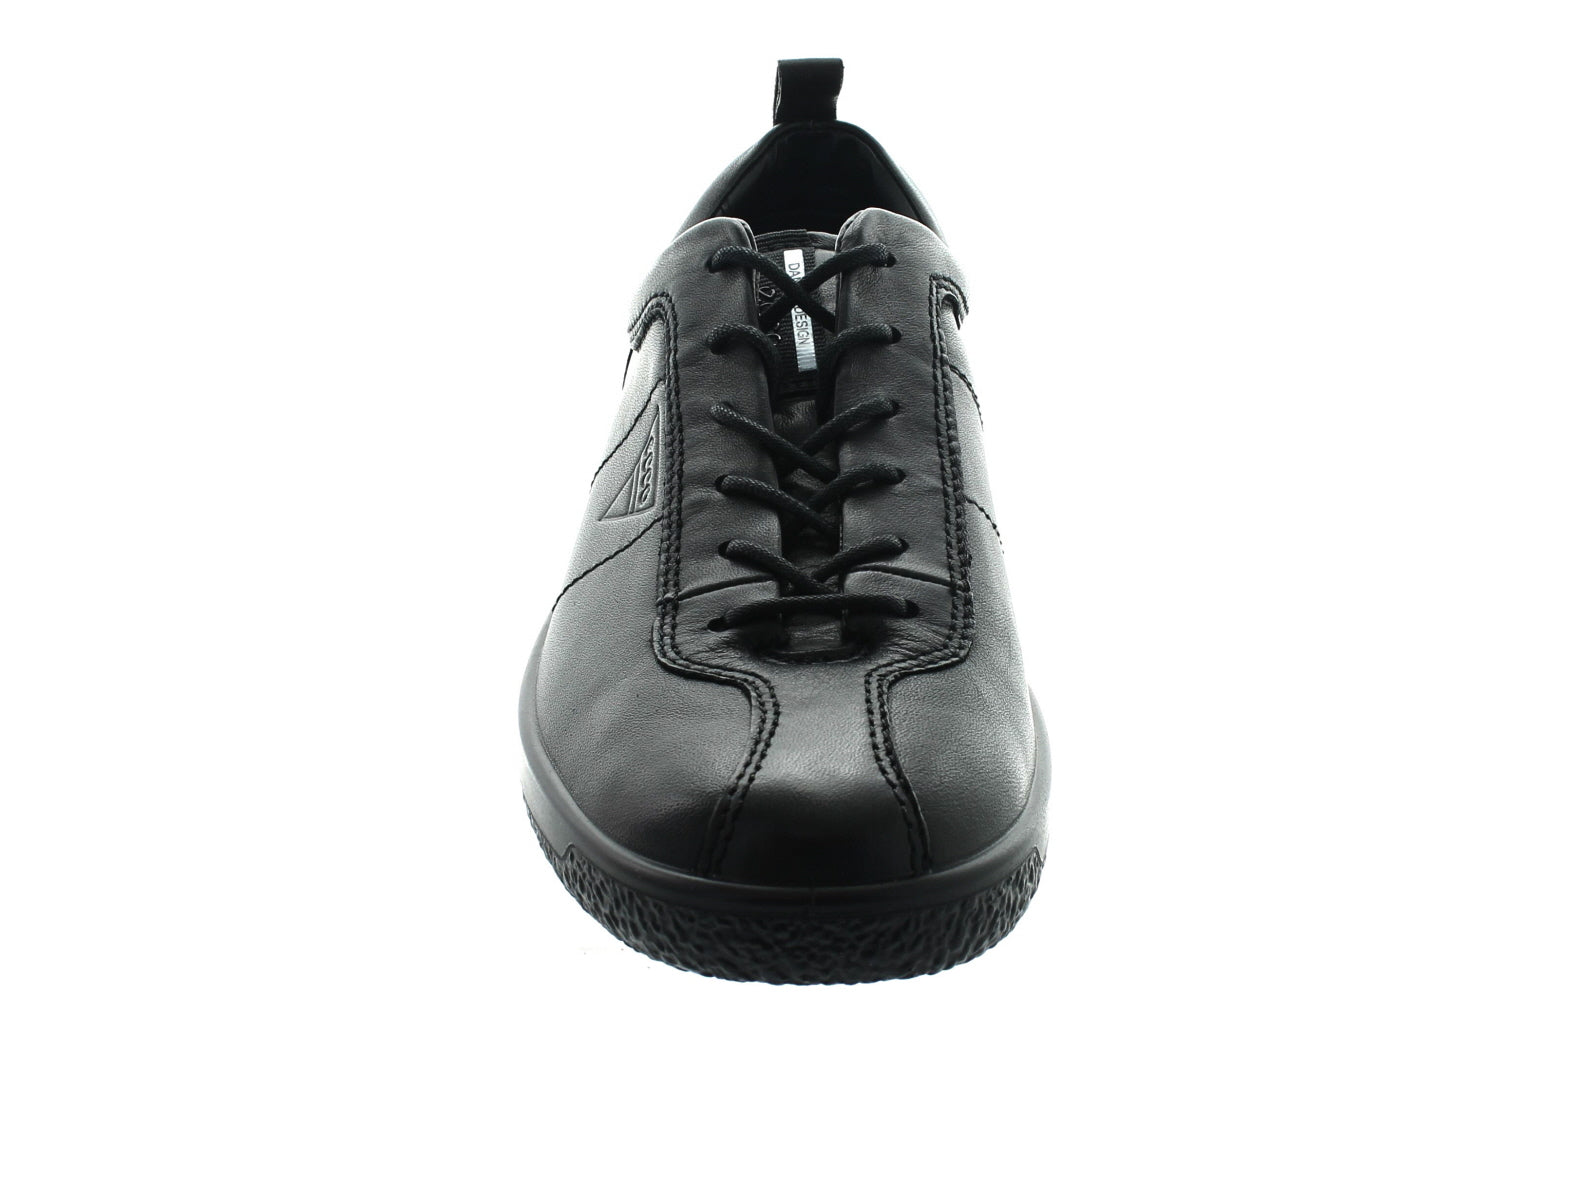 Ecco Soft 1 400503 in Black front view